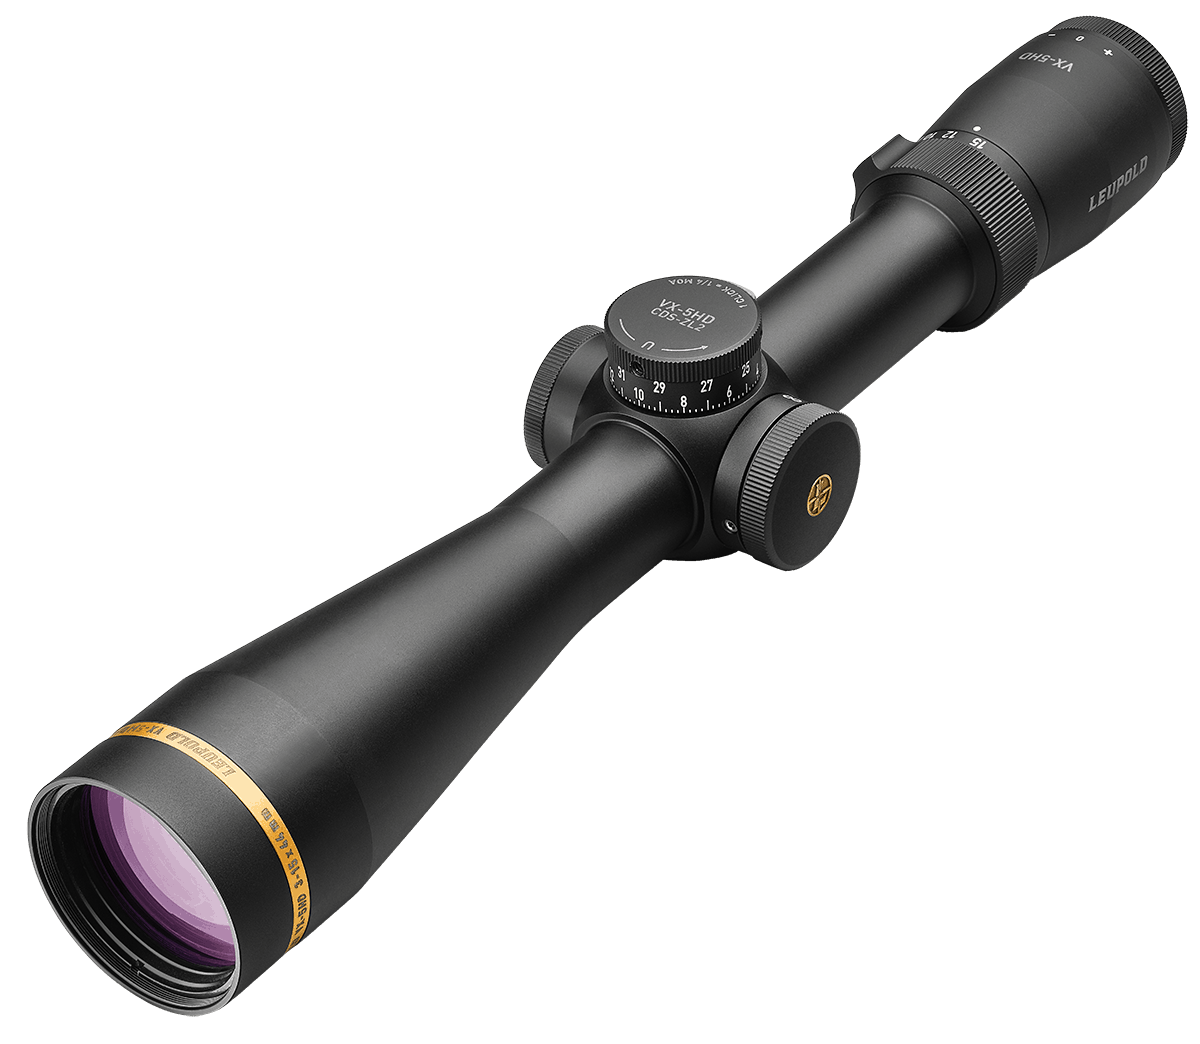 Leupold VX5HD Rifle Scope